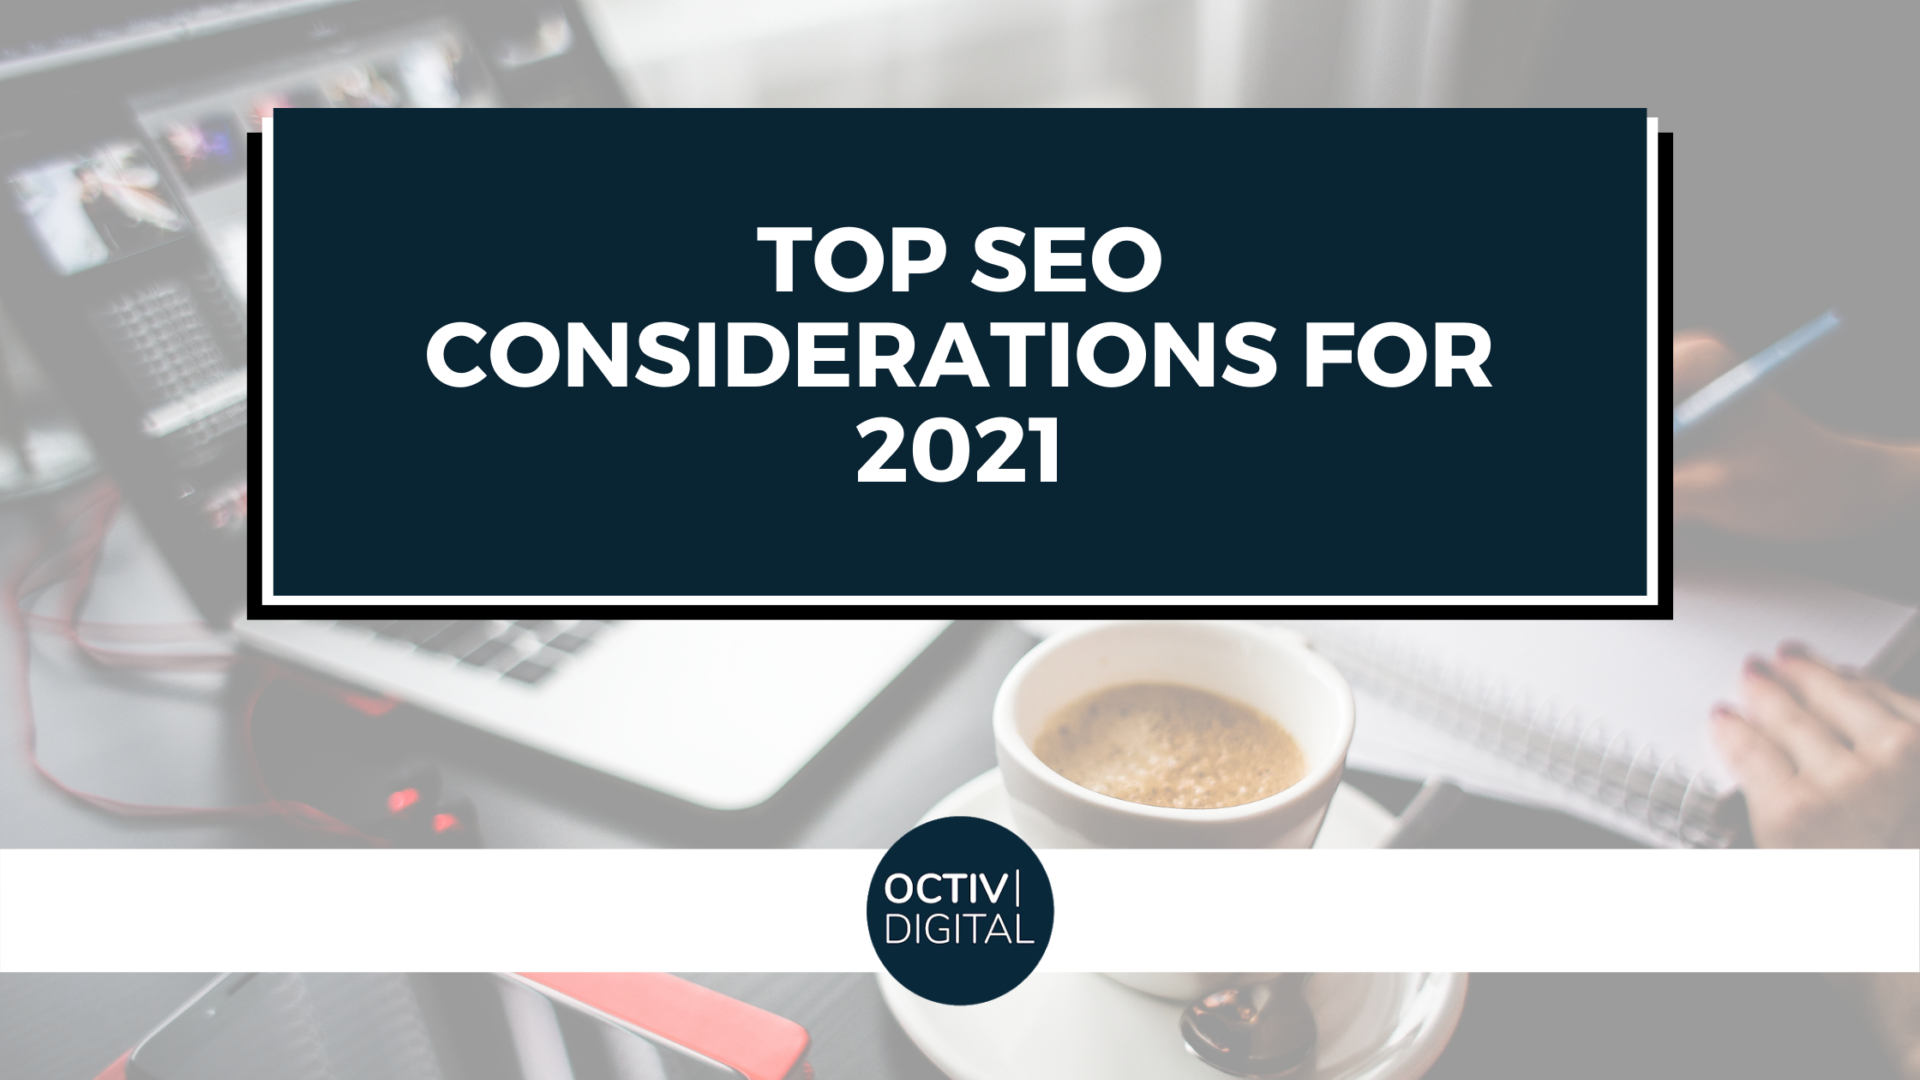 Top SEO Considerations for 2021